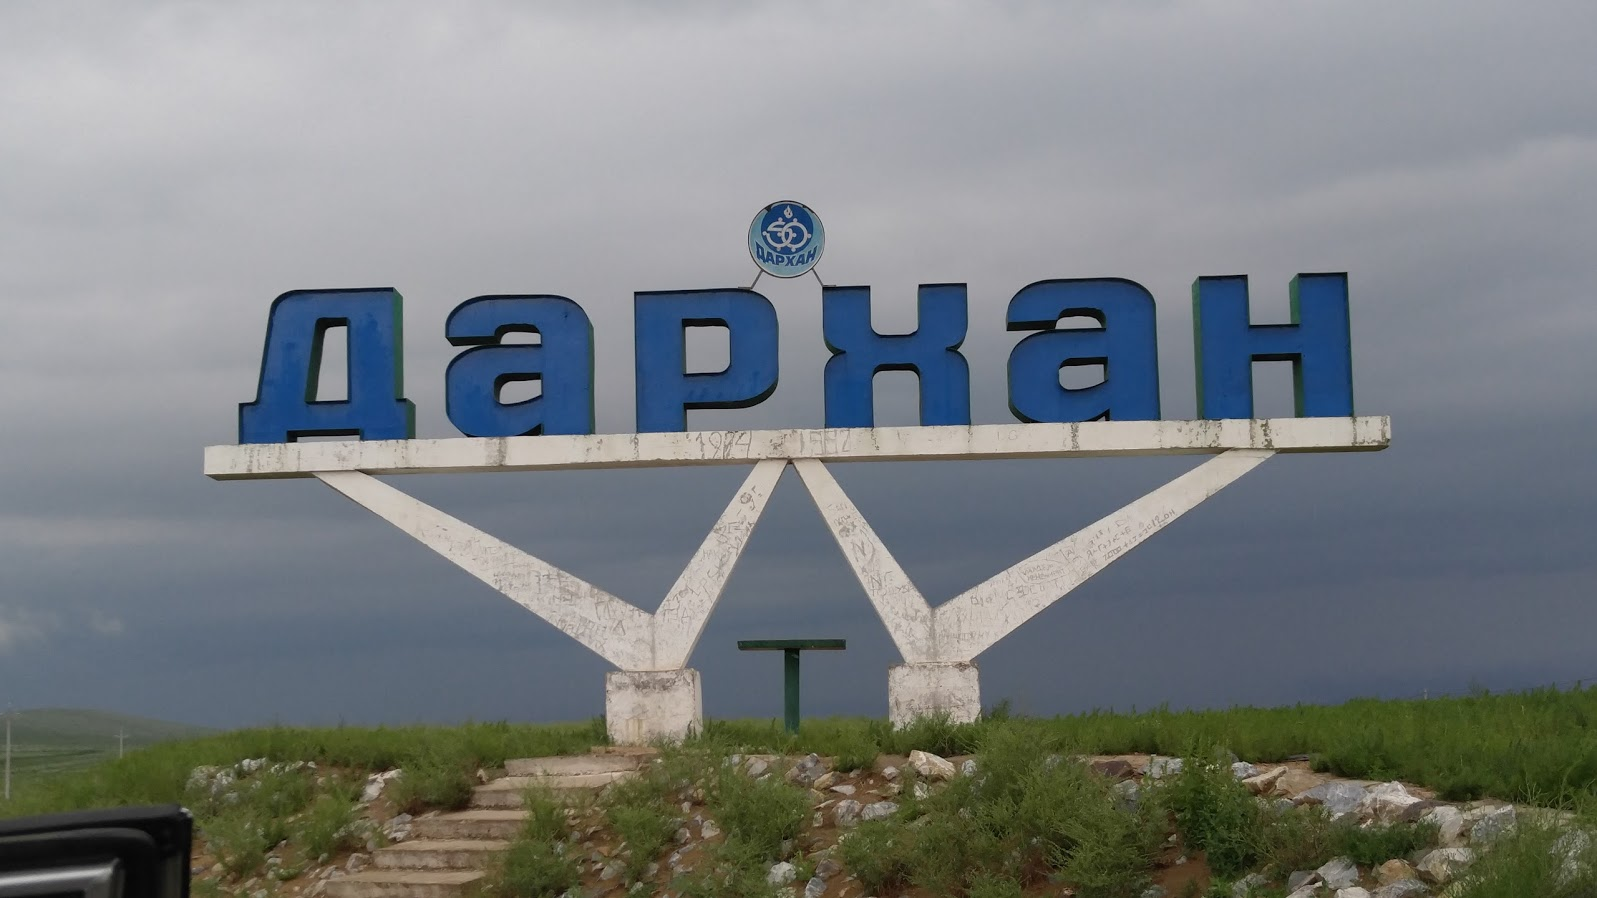 Darkhan sign Mongolia.jpg